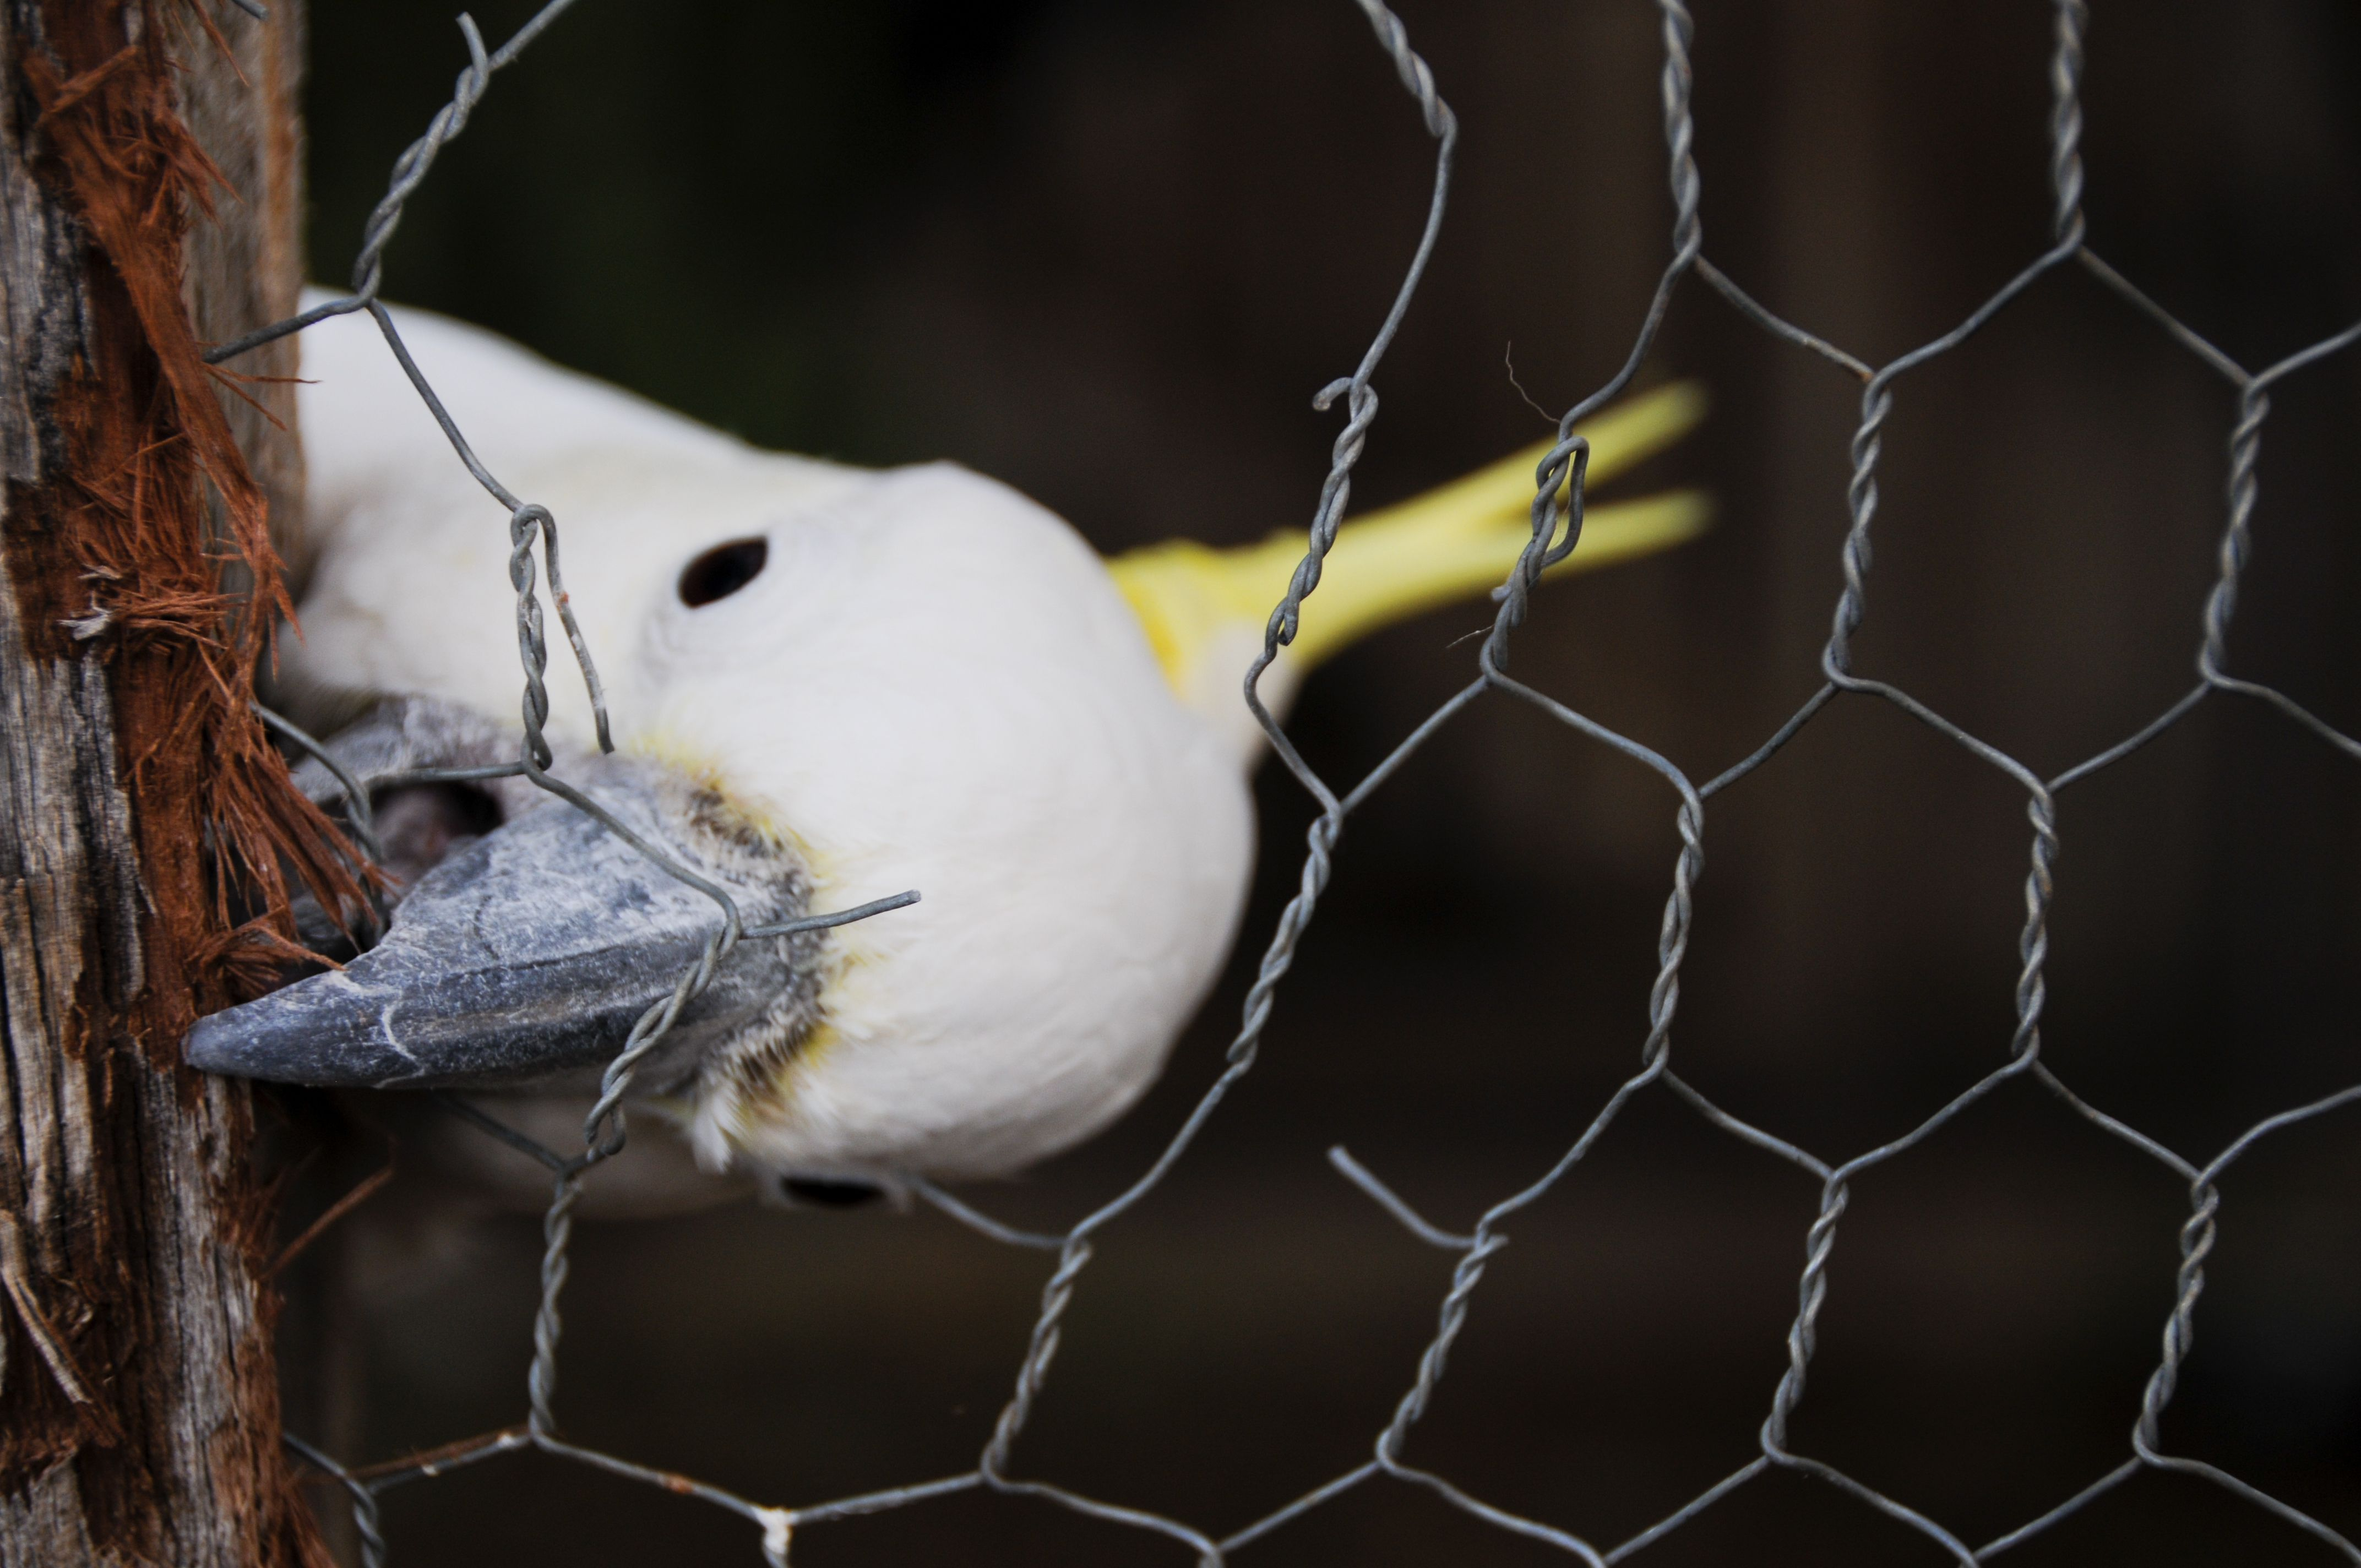 Cheeky Cockatoo Bird Chews Its Escape From Cage